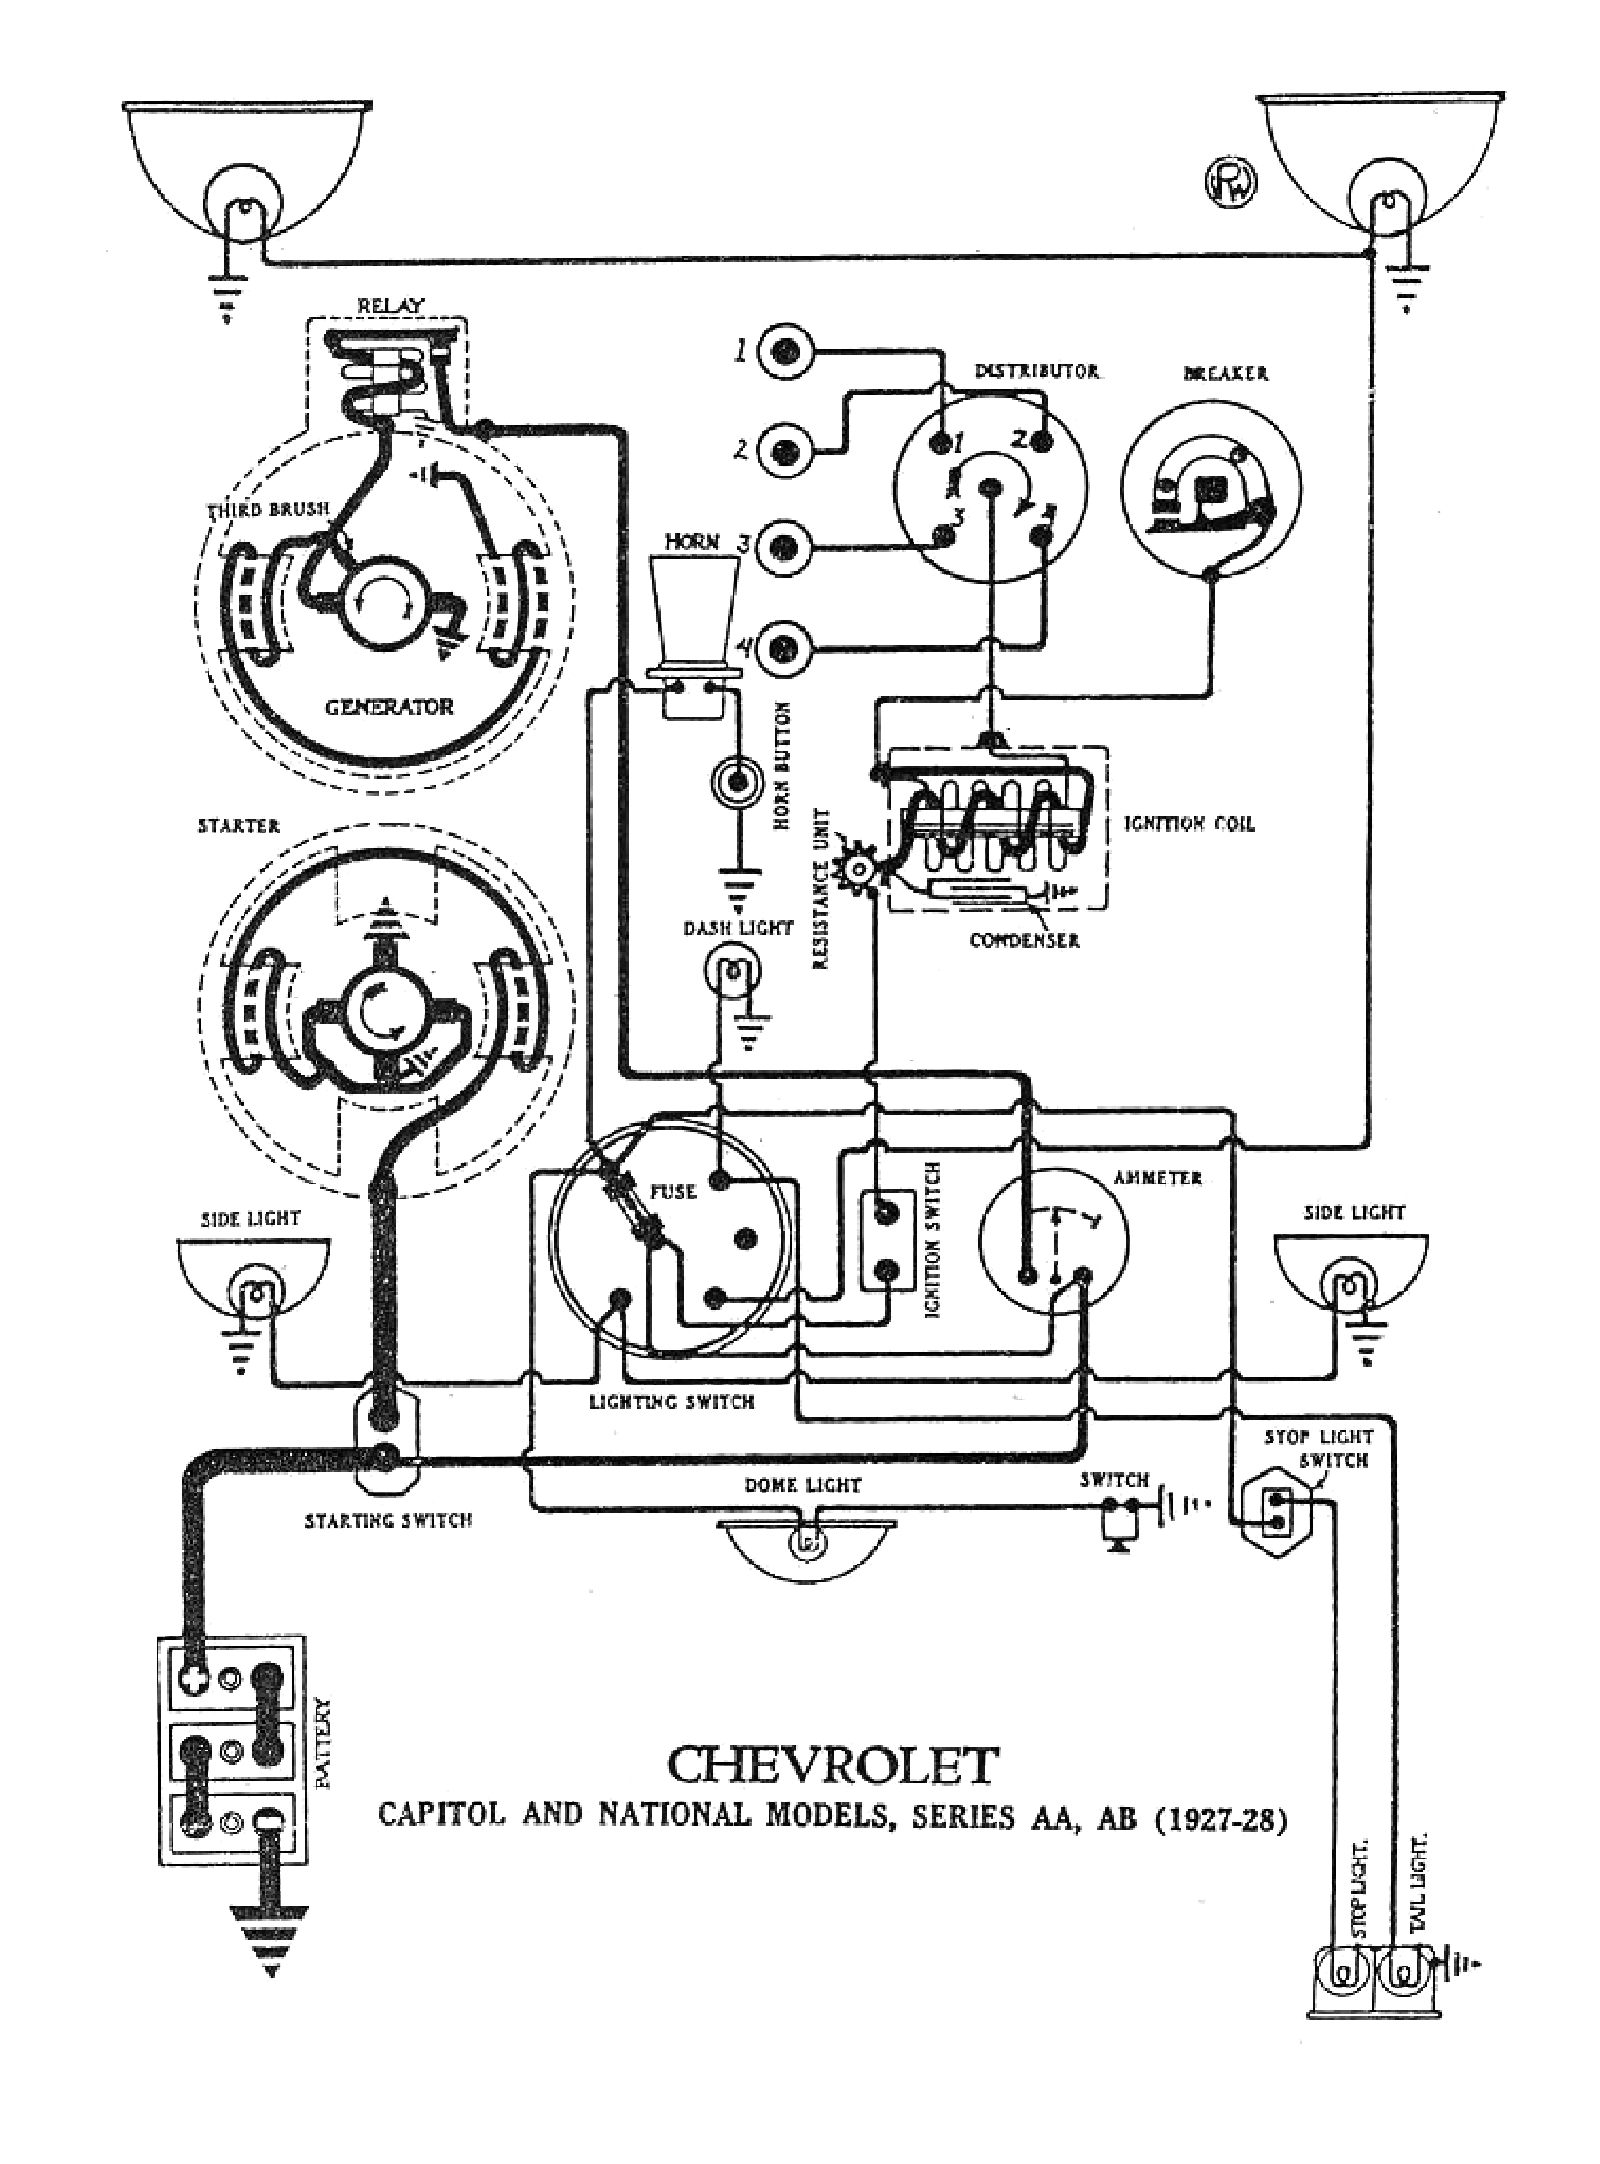 2728wiring chevy wiring diagrams 350 chevy engine wiring diagram at creativeand.co